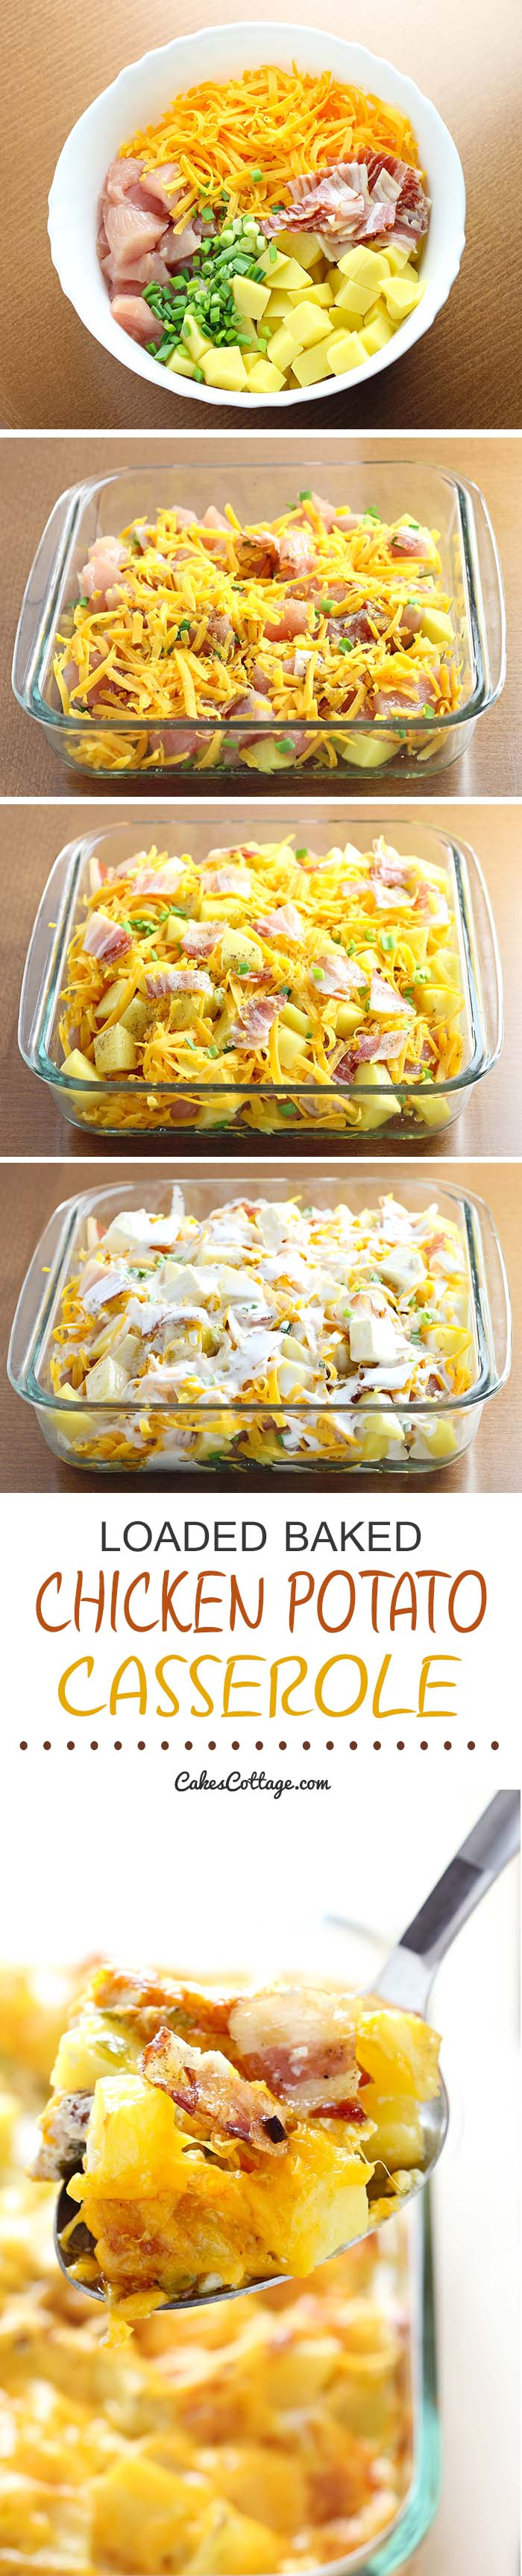 Try out this Loaded Baked Chicken Potato Casserole. Quick and easy, feeds the whole family!